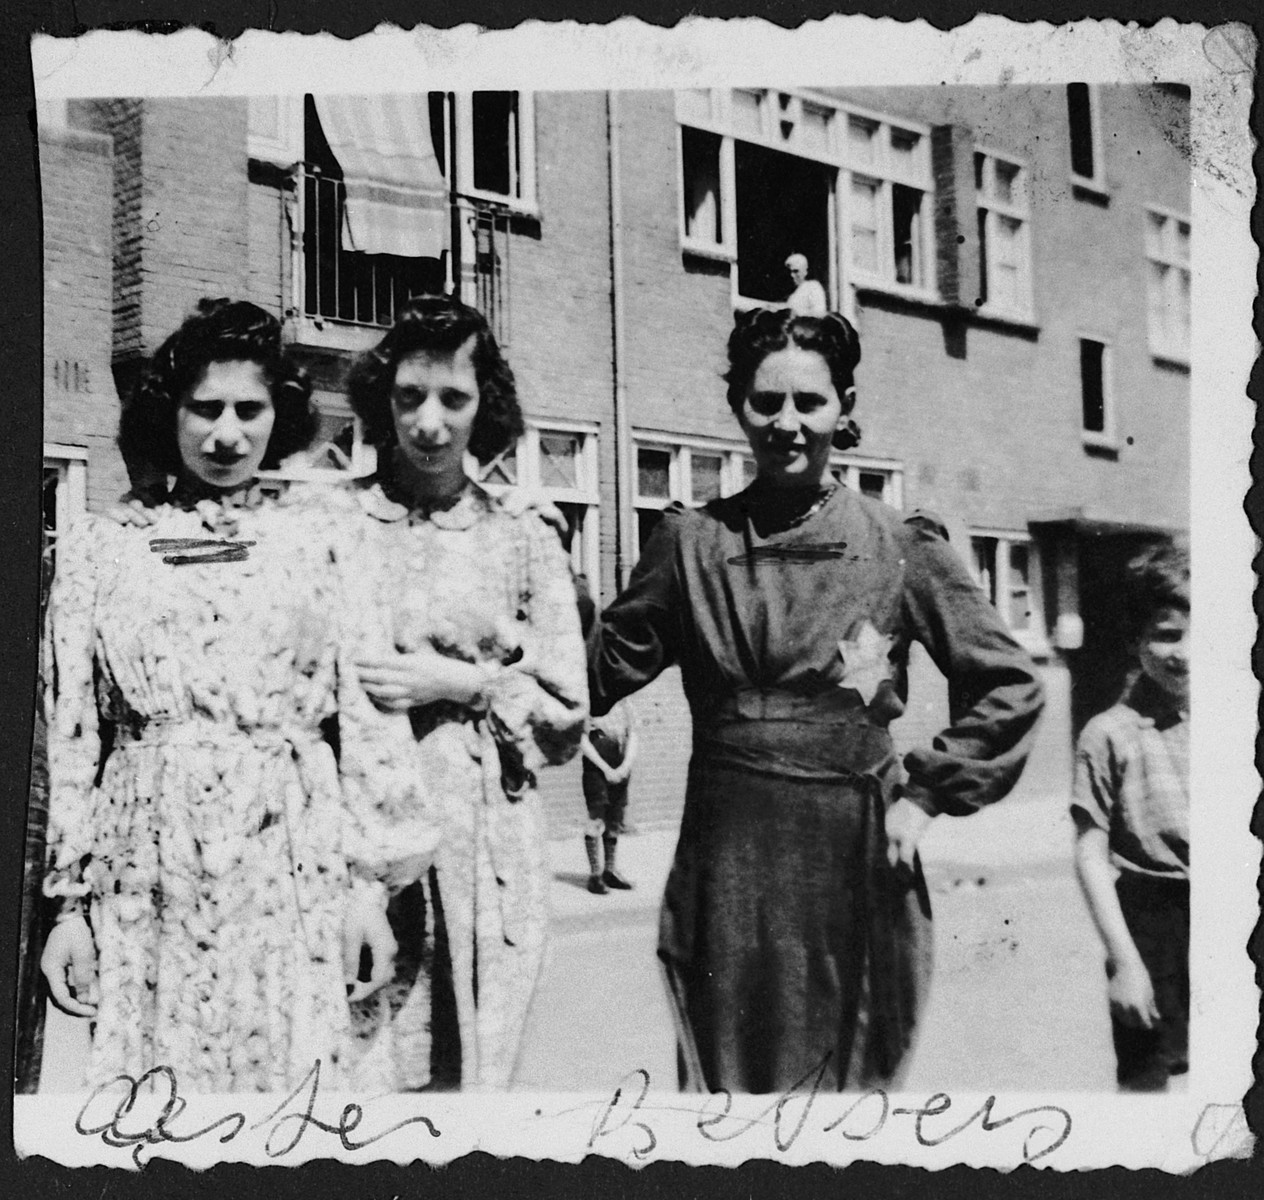 Three young women, one of whom is wearing a star, stand on a street corner.  From left to right are Ester Swaab Franshman, unknown and Betsy Visser Swaab.